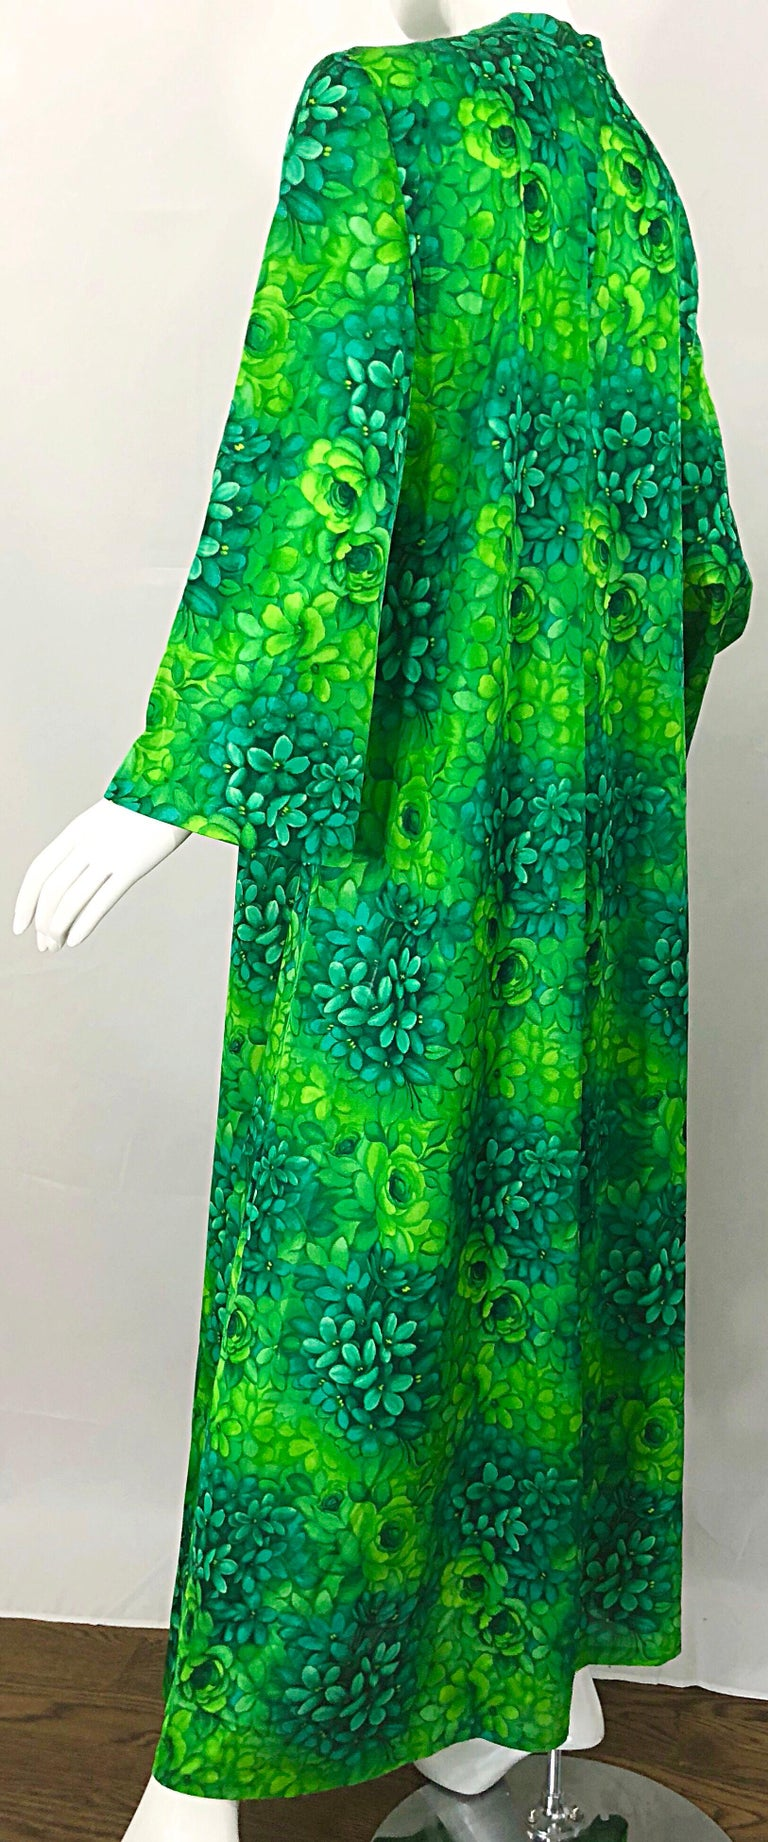 Amazing 1970s Neon + Kelly Green Abstract Flower Print 70s Vintage Caftan Dress For Sale 4